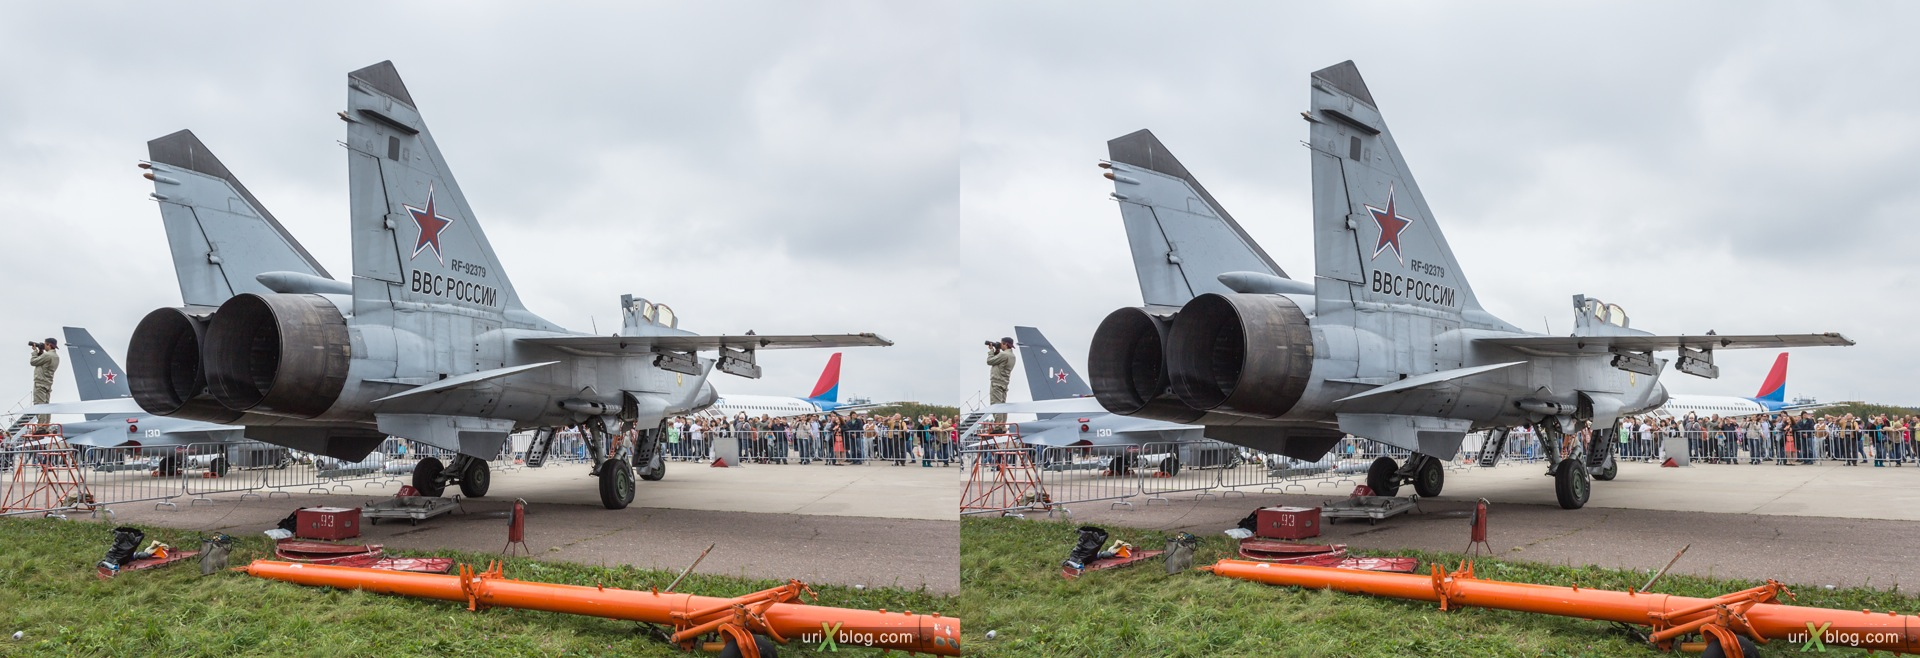 2013, MiG-31BM, MAKS, International Aviation and Space Salon, Russia, Soviet, USSR, Ramenskoye airfield, airplane, 3D, stereo pair, cross-eyed, crossview, cross view stereo pair, stereoscopic